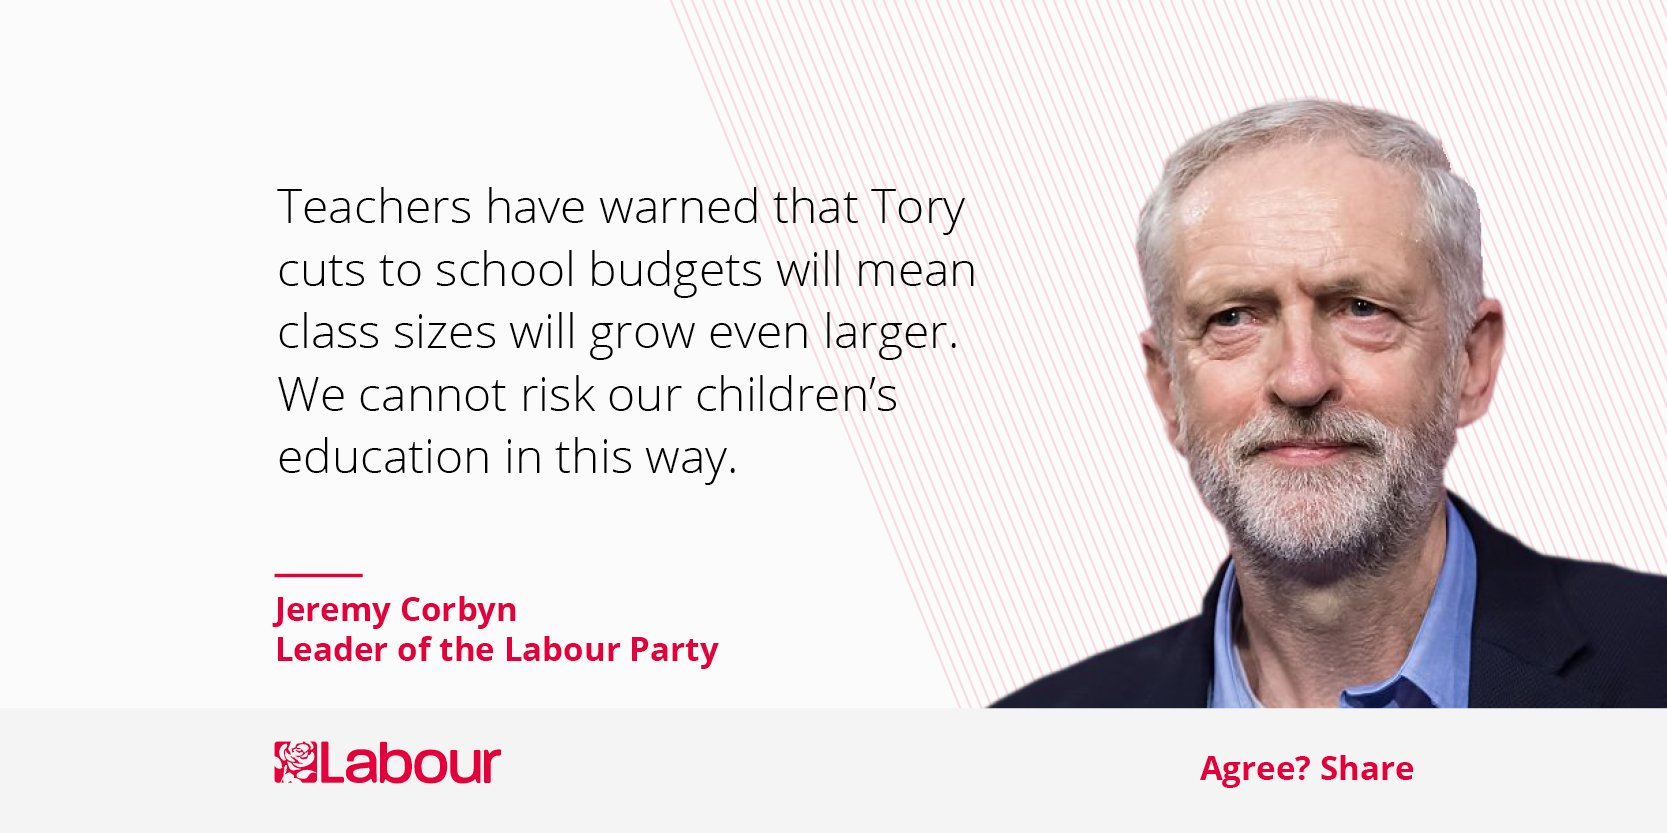 We can't risk our children's education by leaving it in the hands of the Tories any longer. #VoteLabour https://t.co/fGxhJl7vvQ